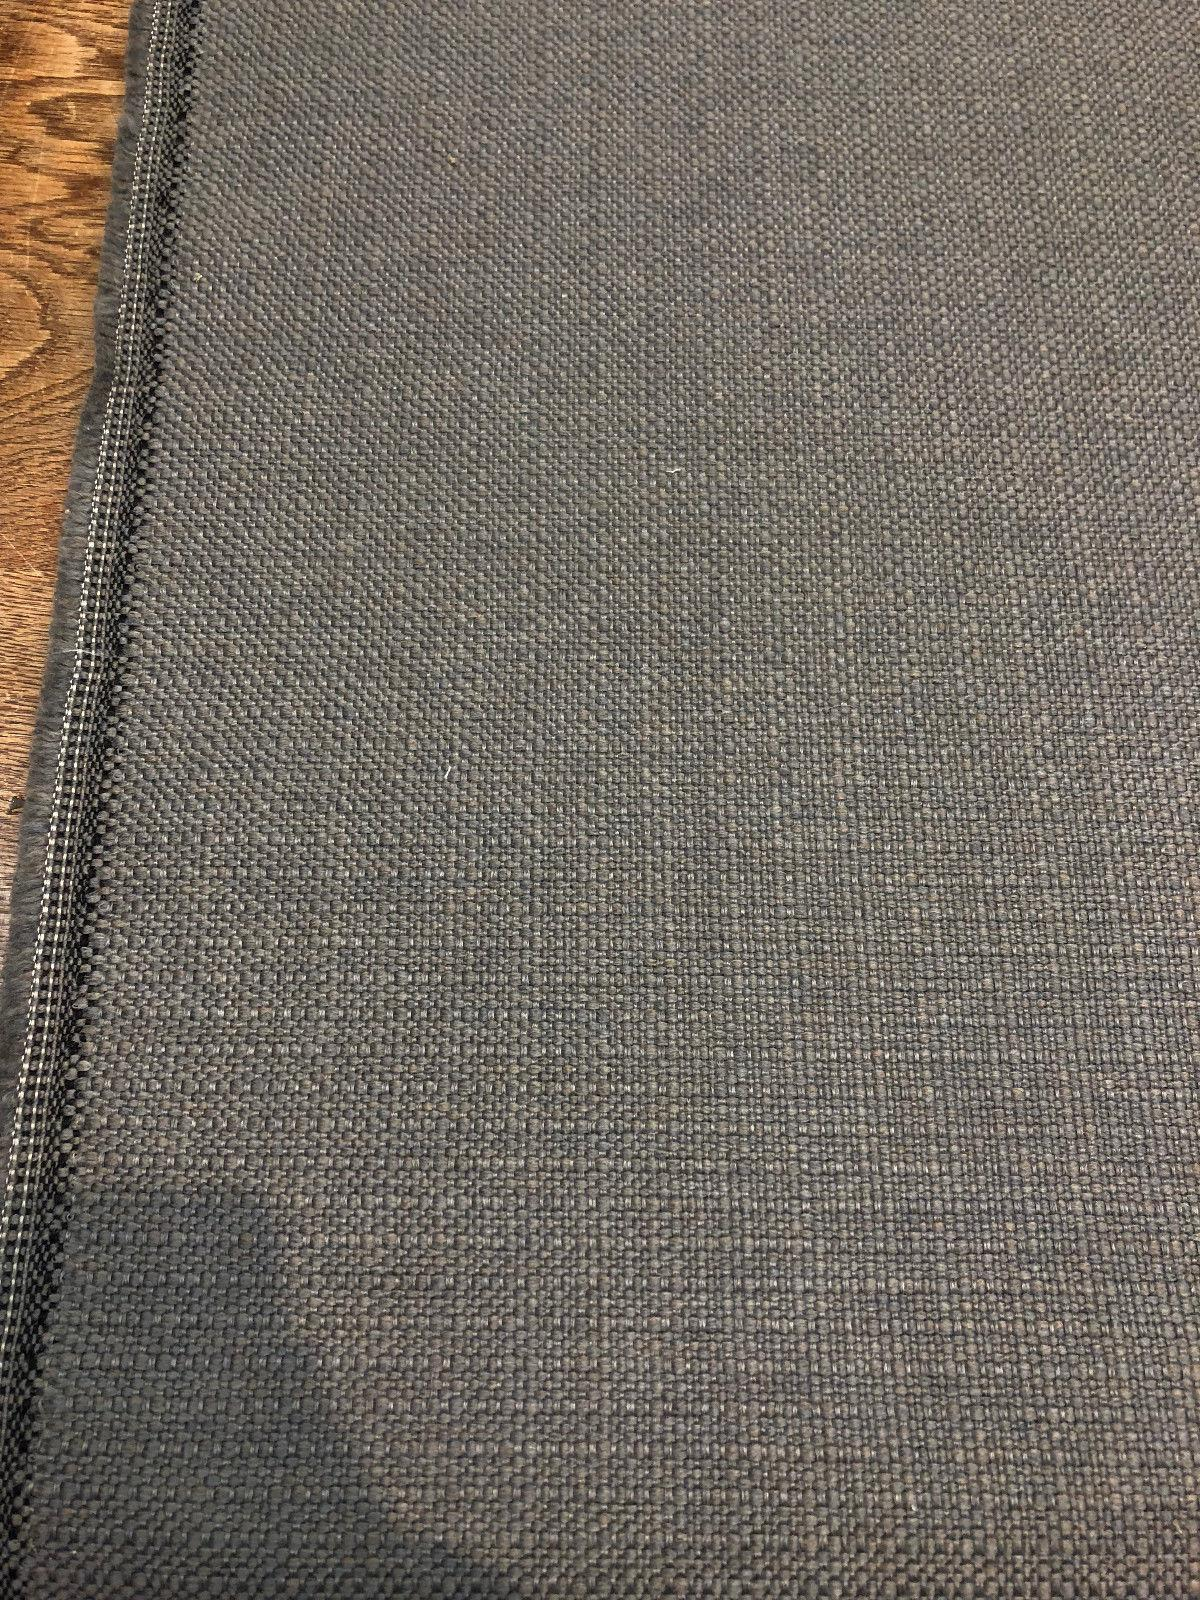 Sampson Gray Chenille Upholstery Fabric Italian Cut By The